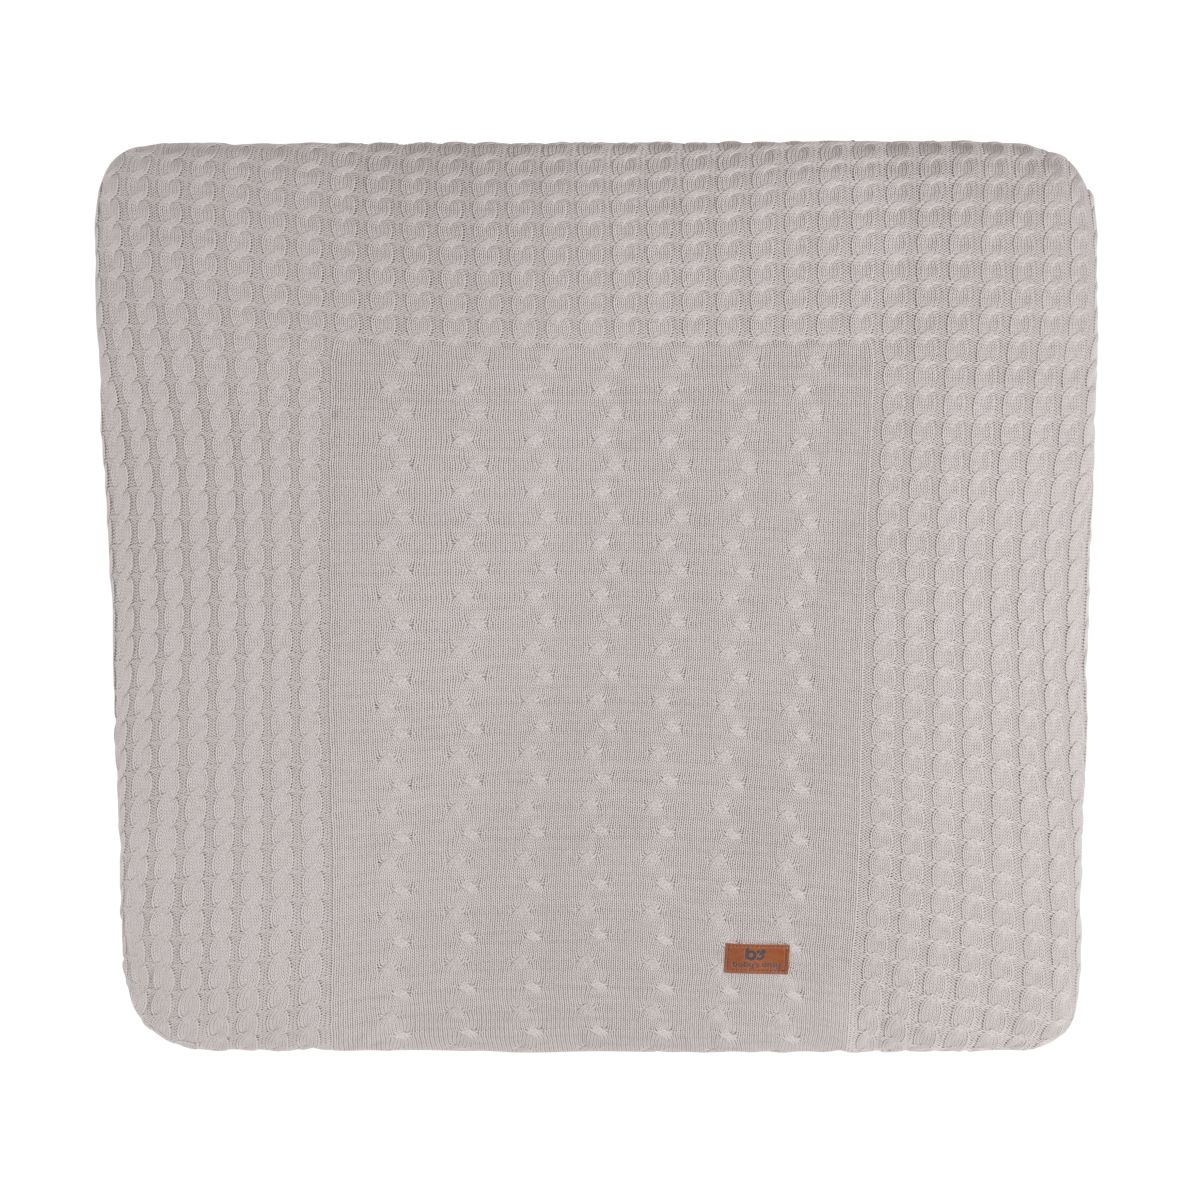 changing pad cover cable loam 75x85